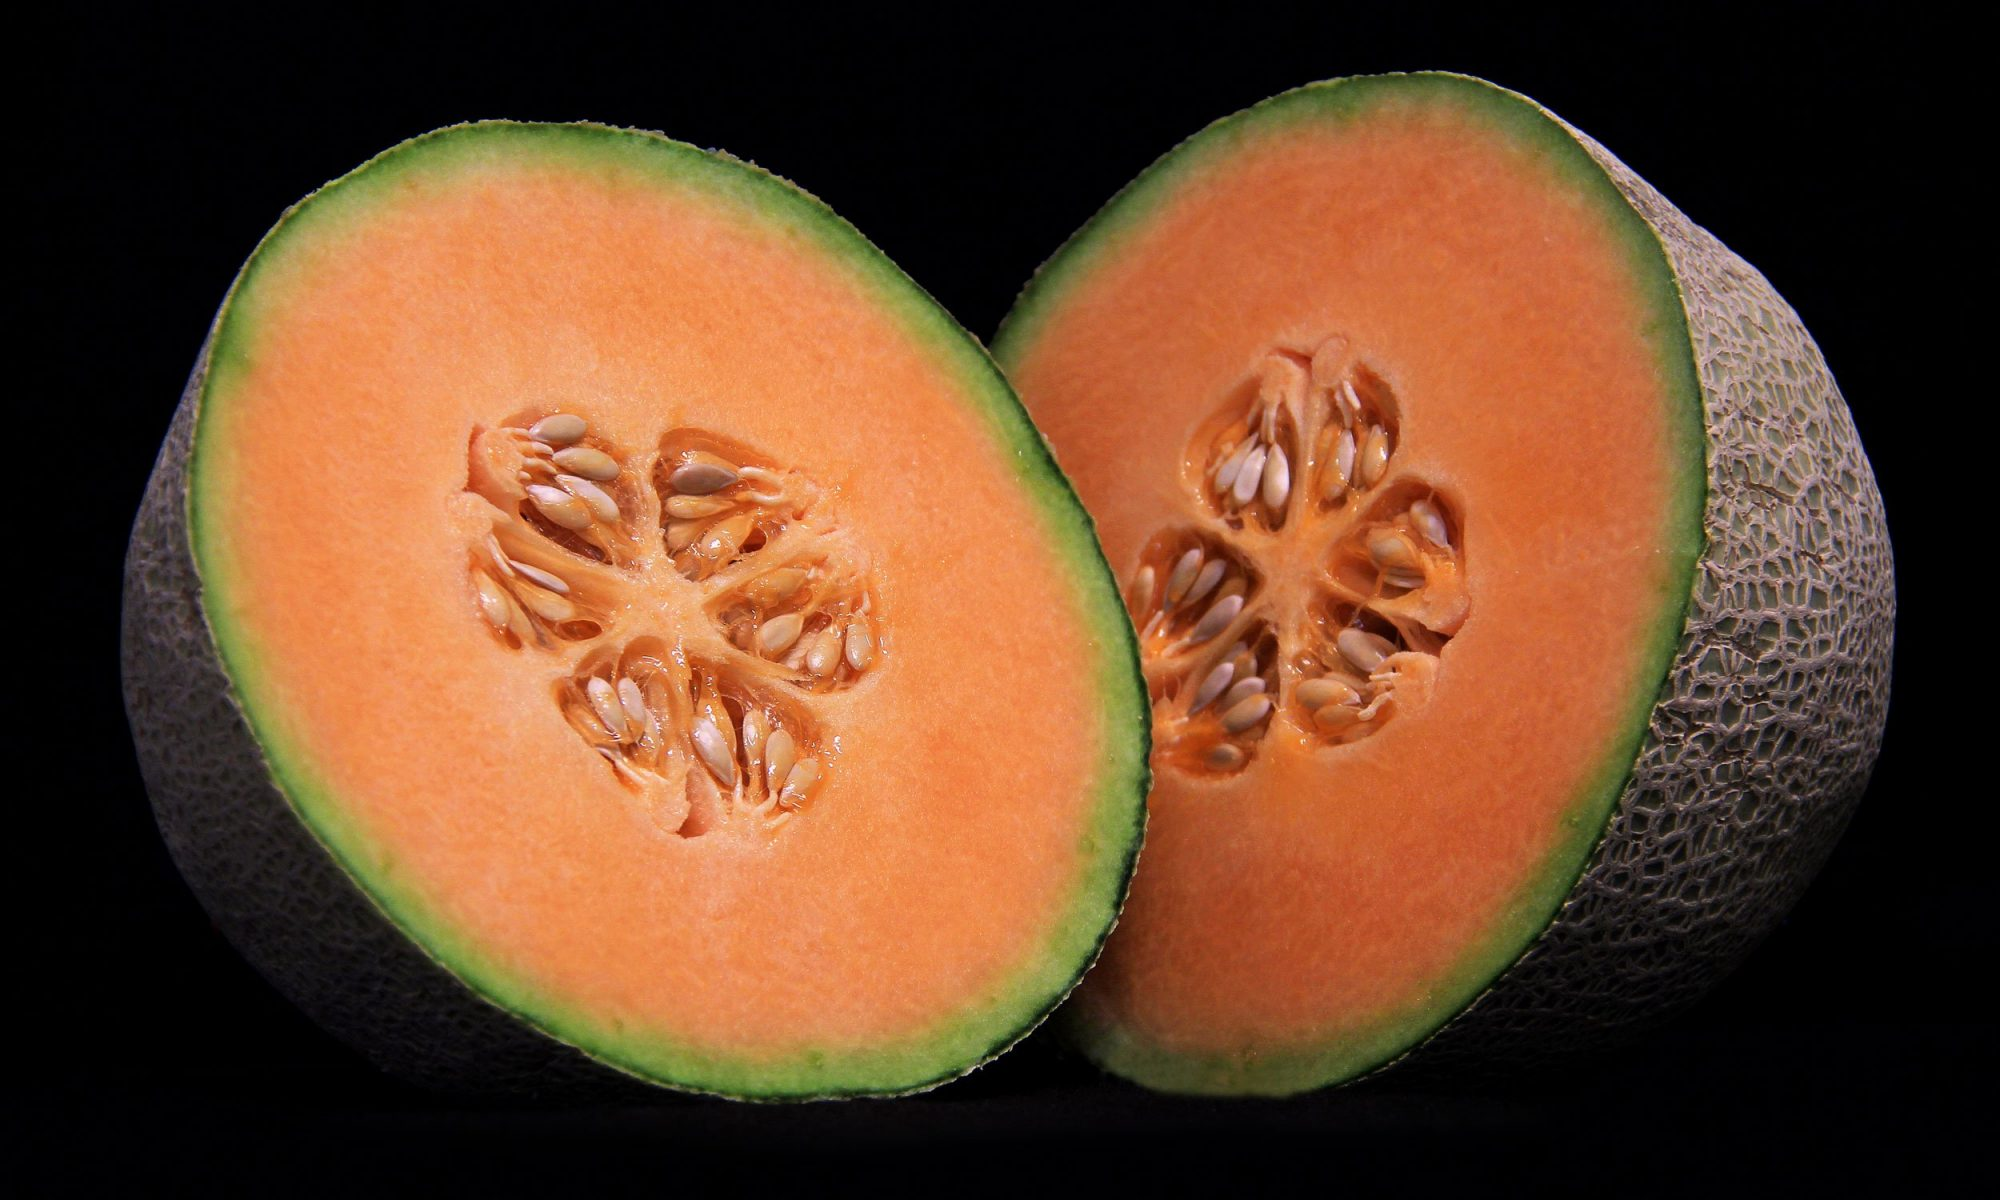 This New Kind of Cantaloupe Will Totally Change Your Fruit